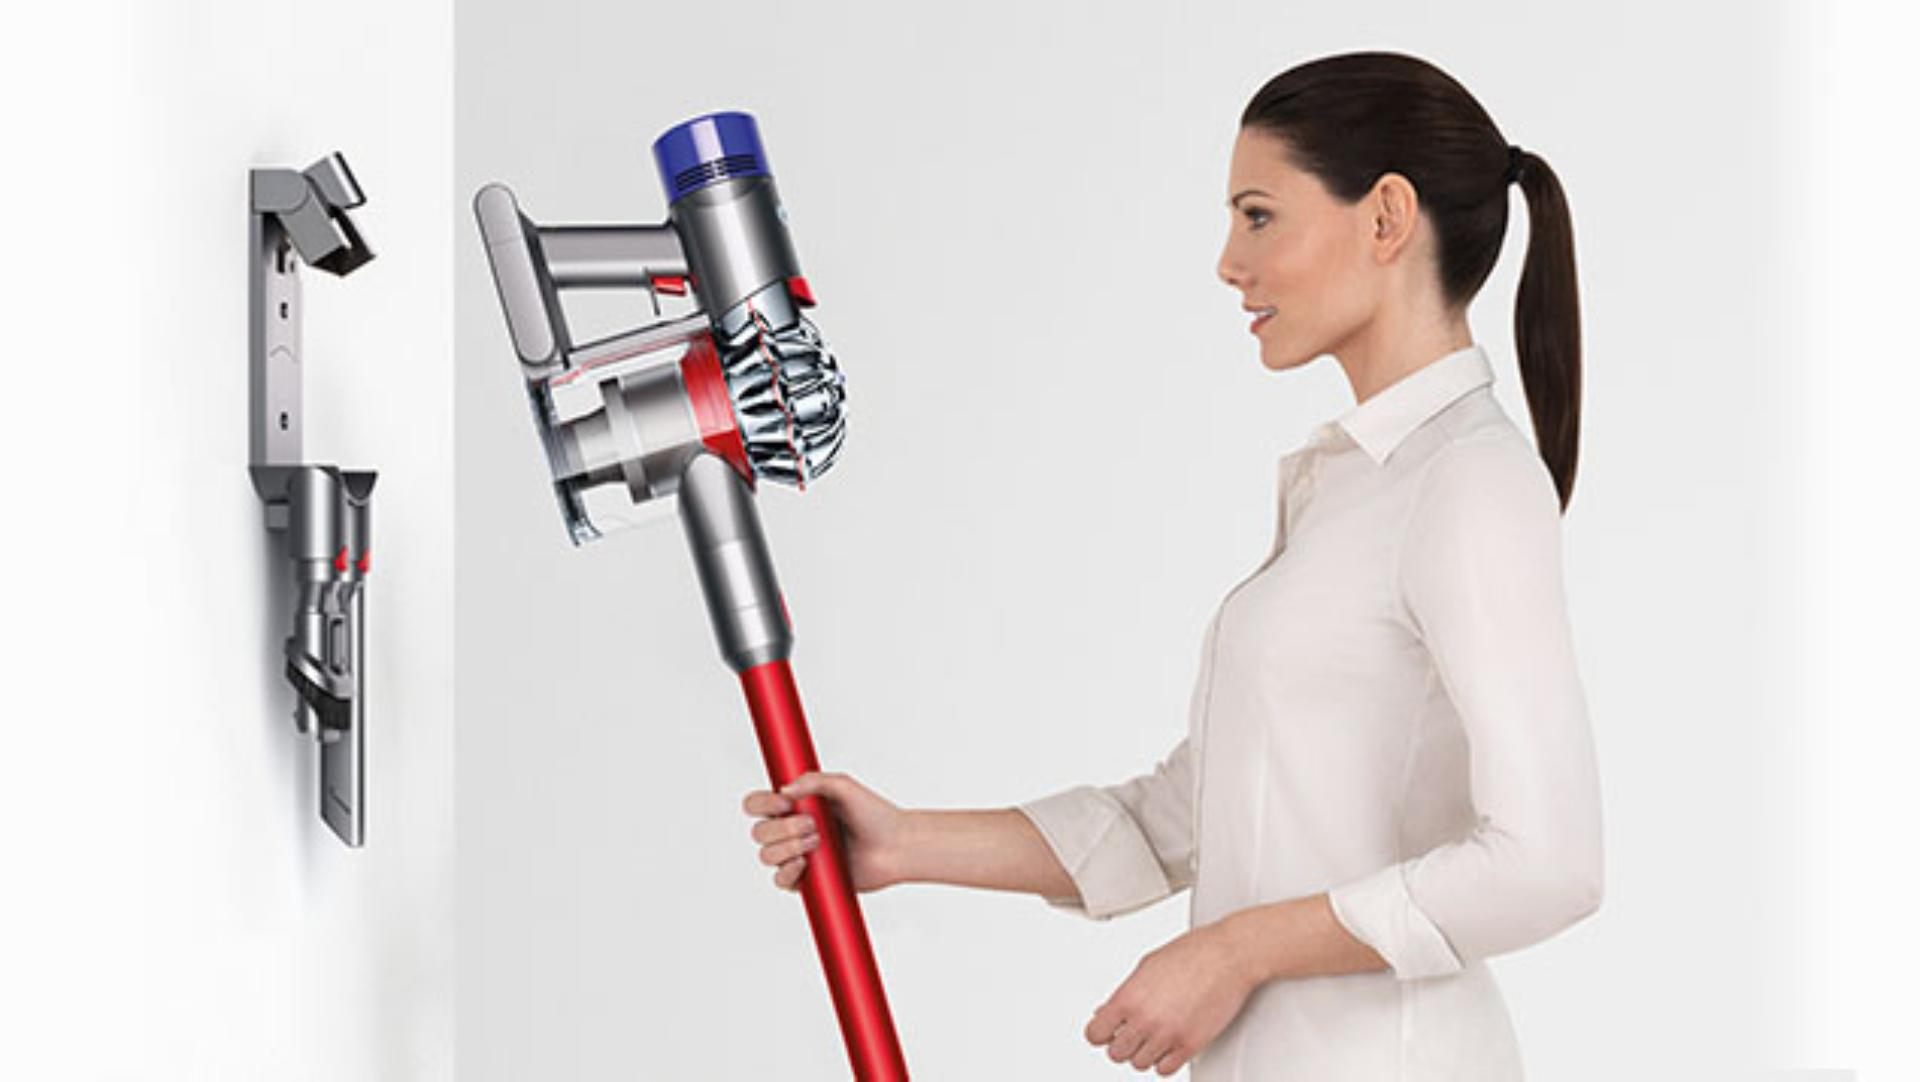 Woman using Dyson V8 Absolute vacuum docking station